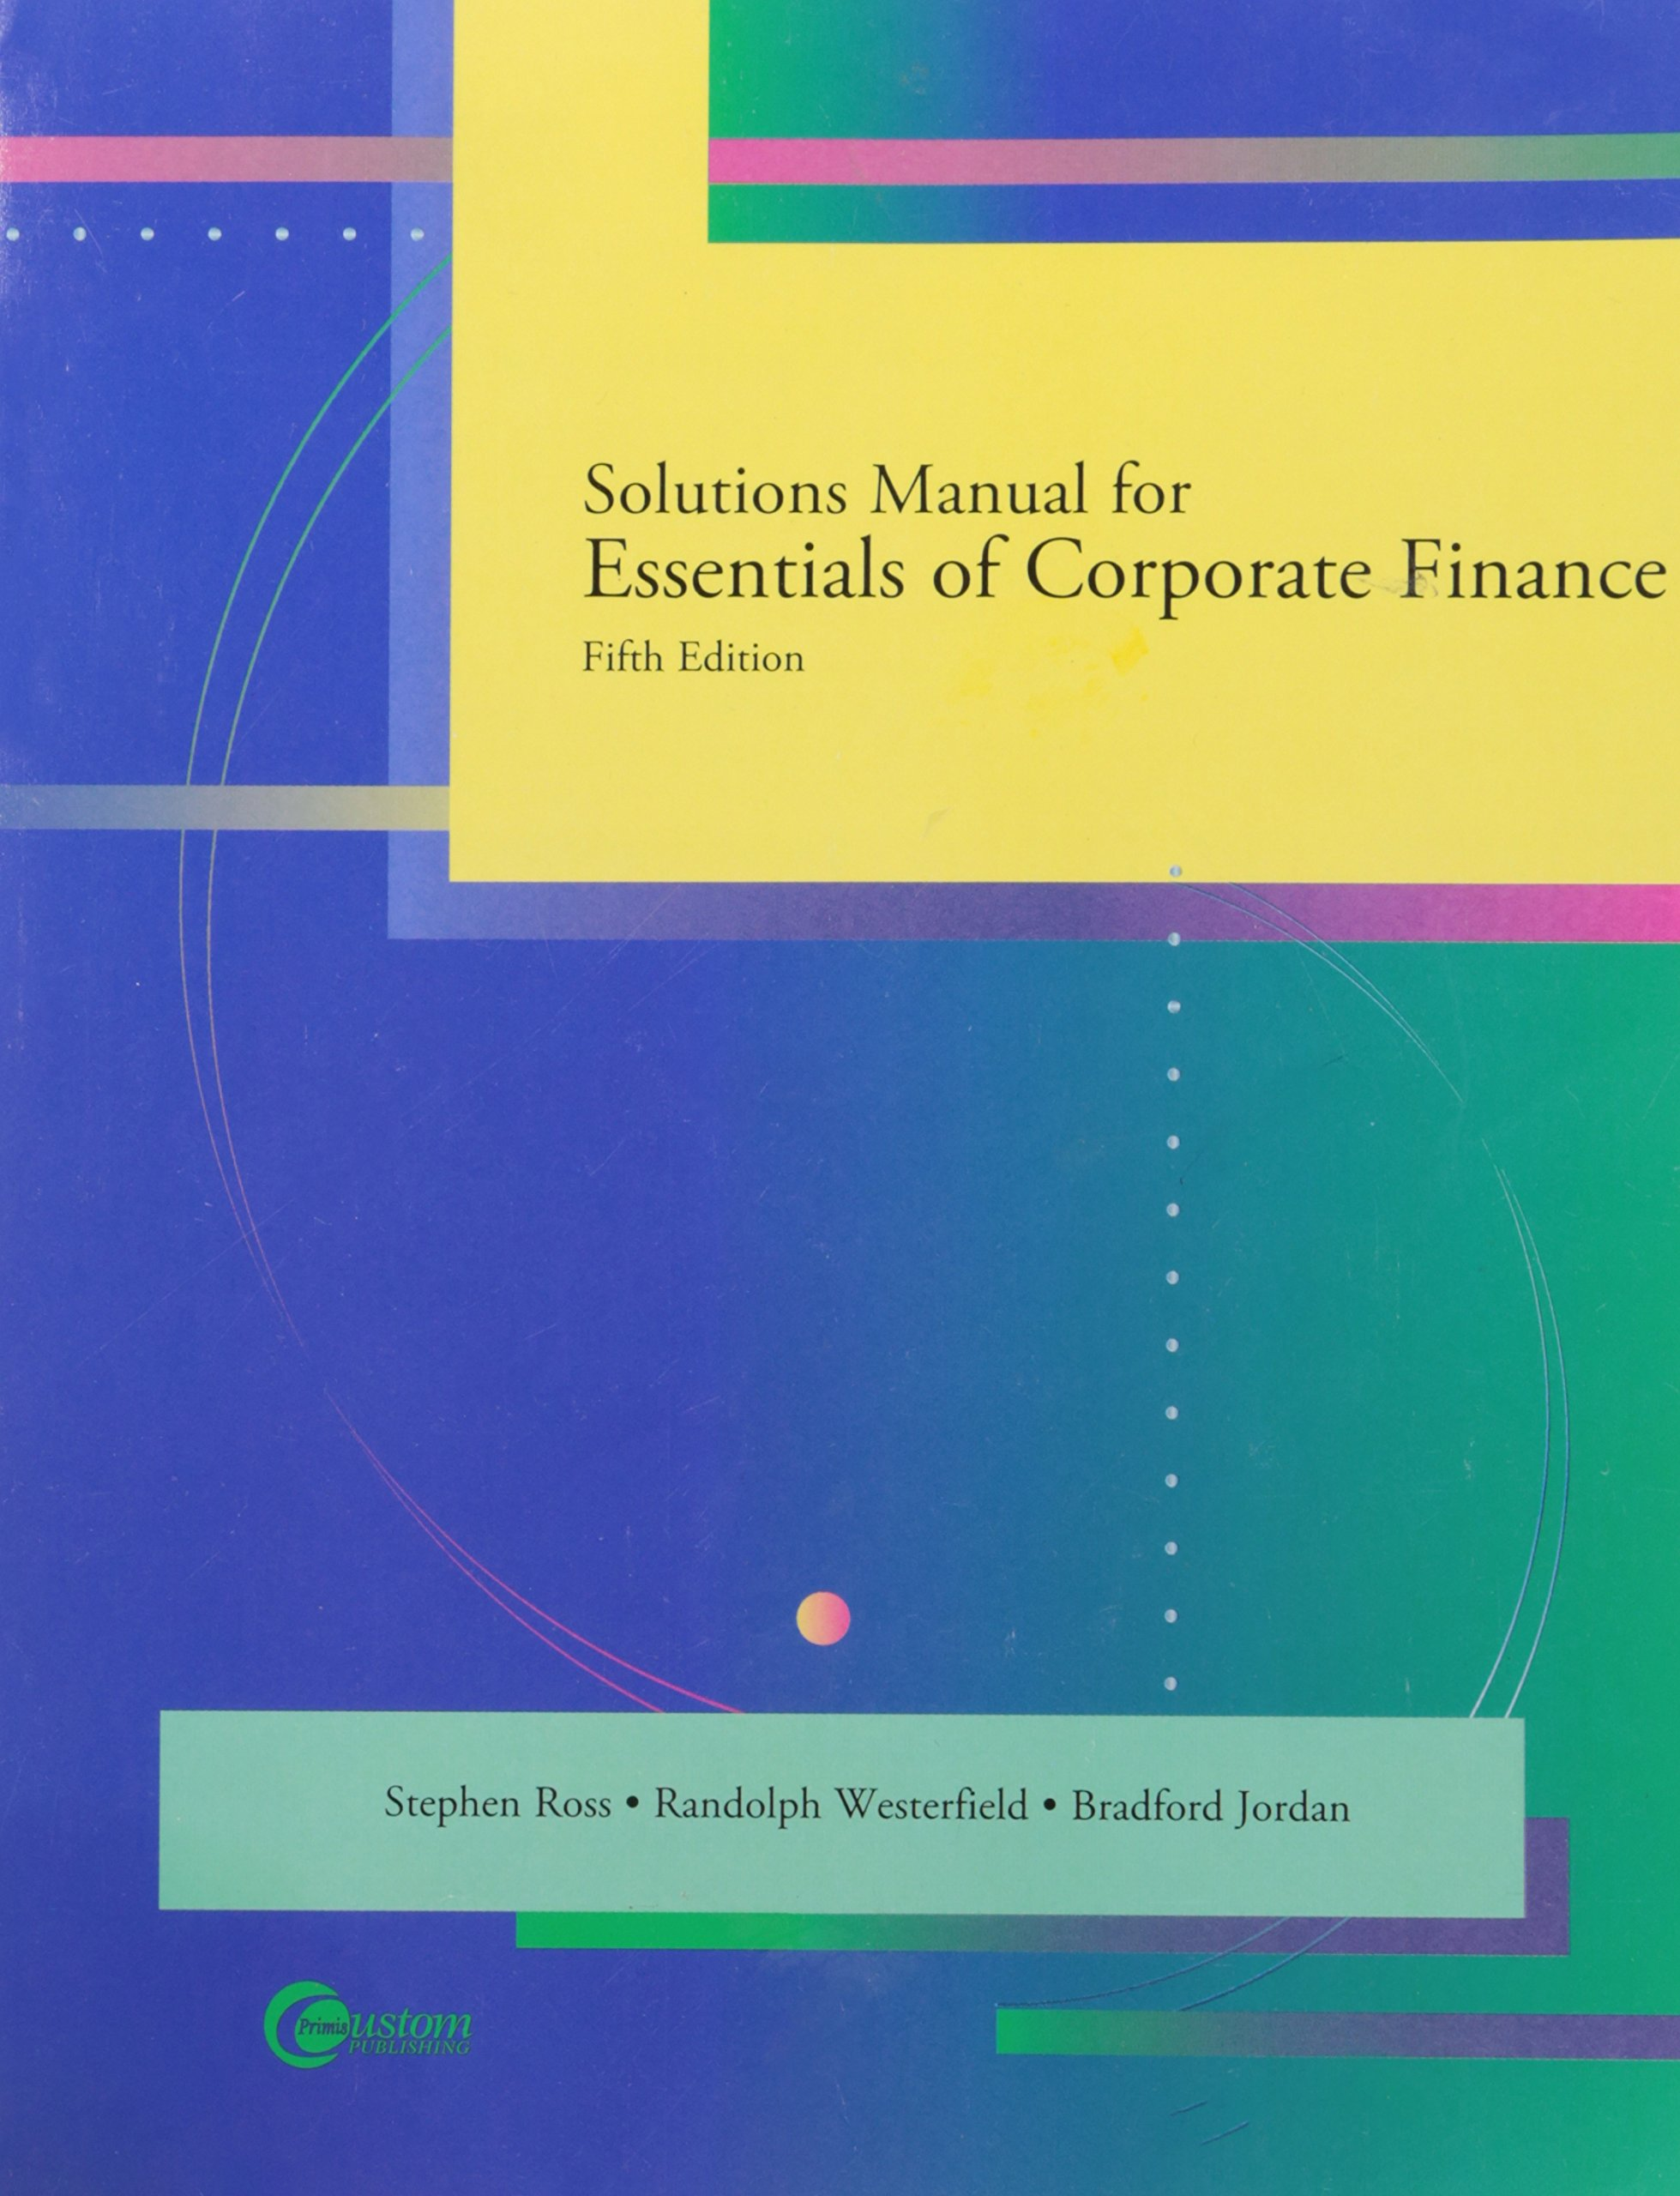 Amazon.com: Solutions Manual for Essentials of Corporate Finance, 5e  (9780073279237): Books